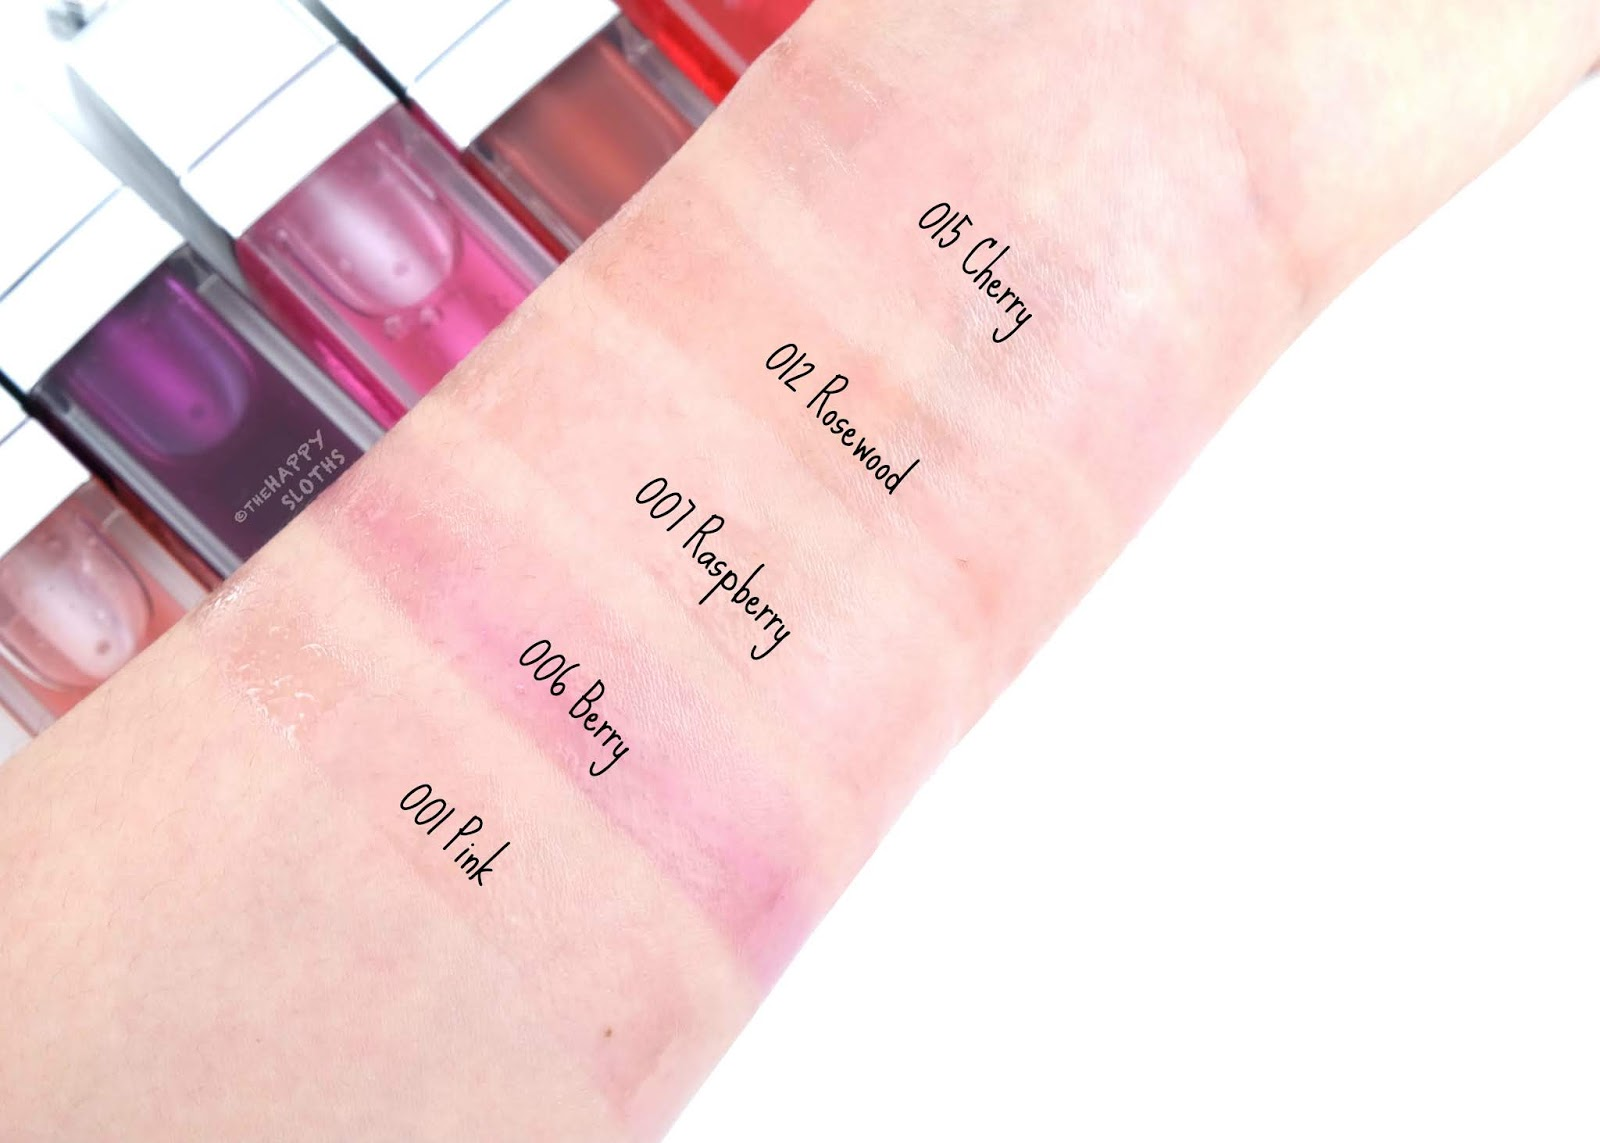 Dior | Dior Addict Lip Glow Oil: Review and Swatches